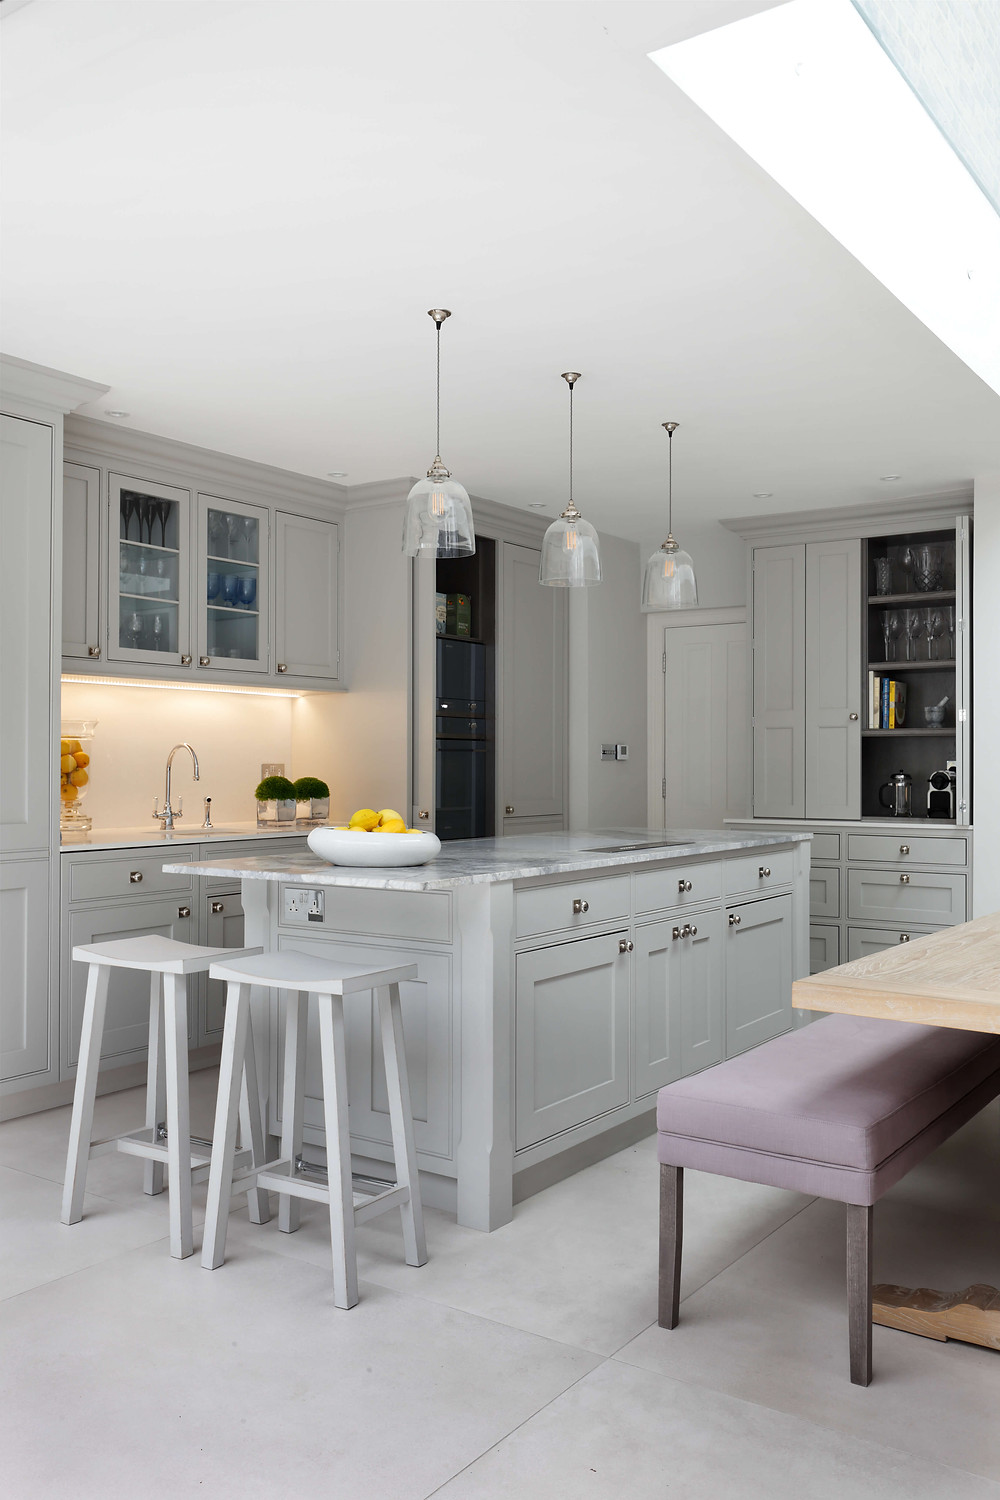 Kitchen in Fulham, West London, designed by Catherine Wilman Interiors with island and hand-made cupboards